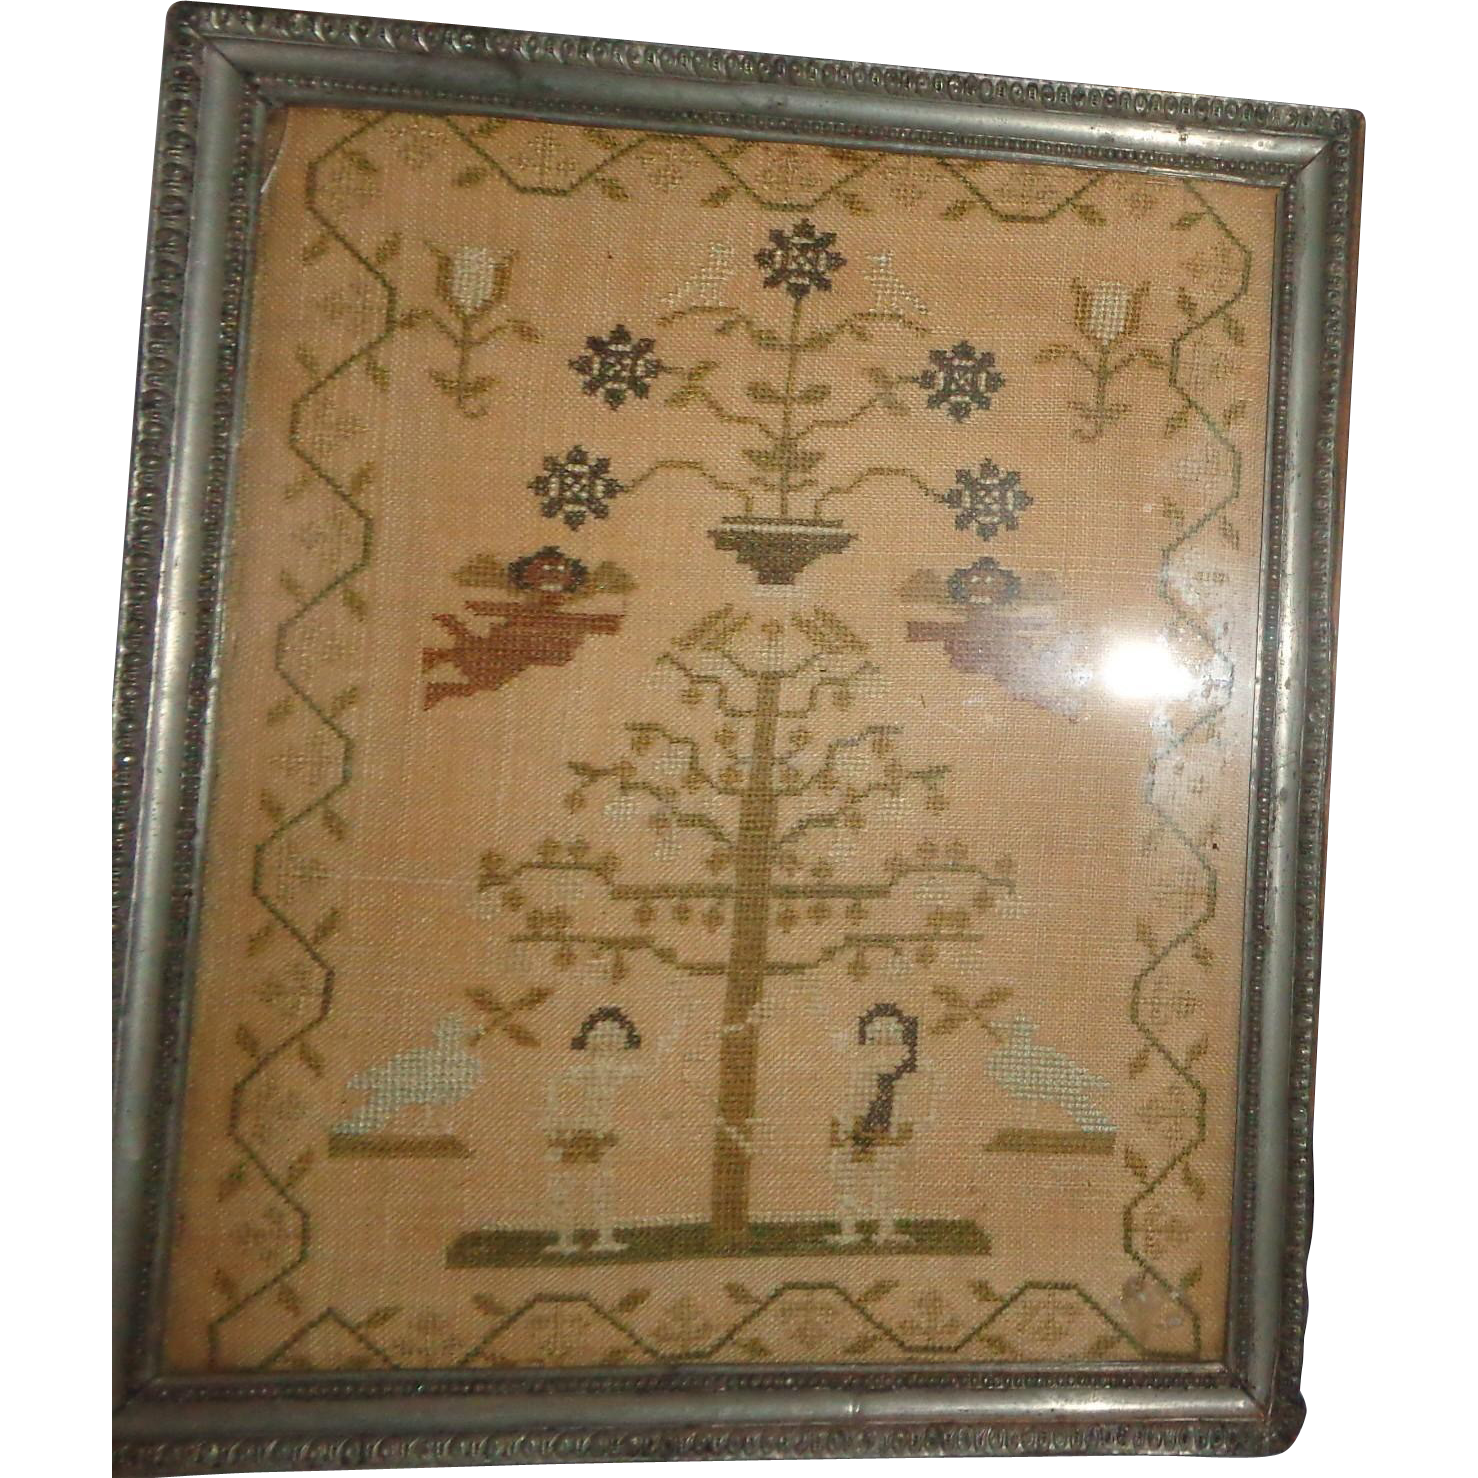 "Circa 1815 Sampler ""The Fall And Redemption of Man"" From The Collection Of J. L. Middleton, The Old Palace, Richmond, Surrey, England"